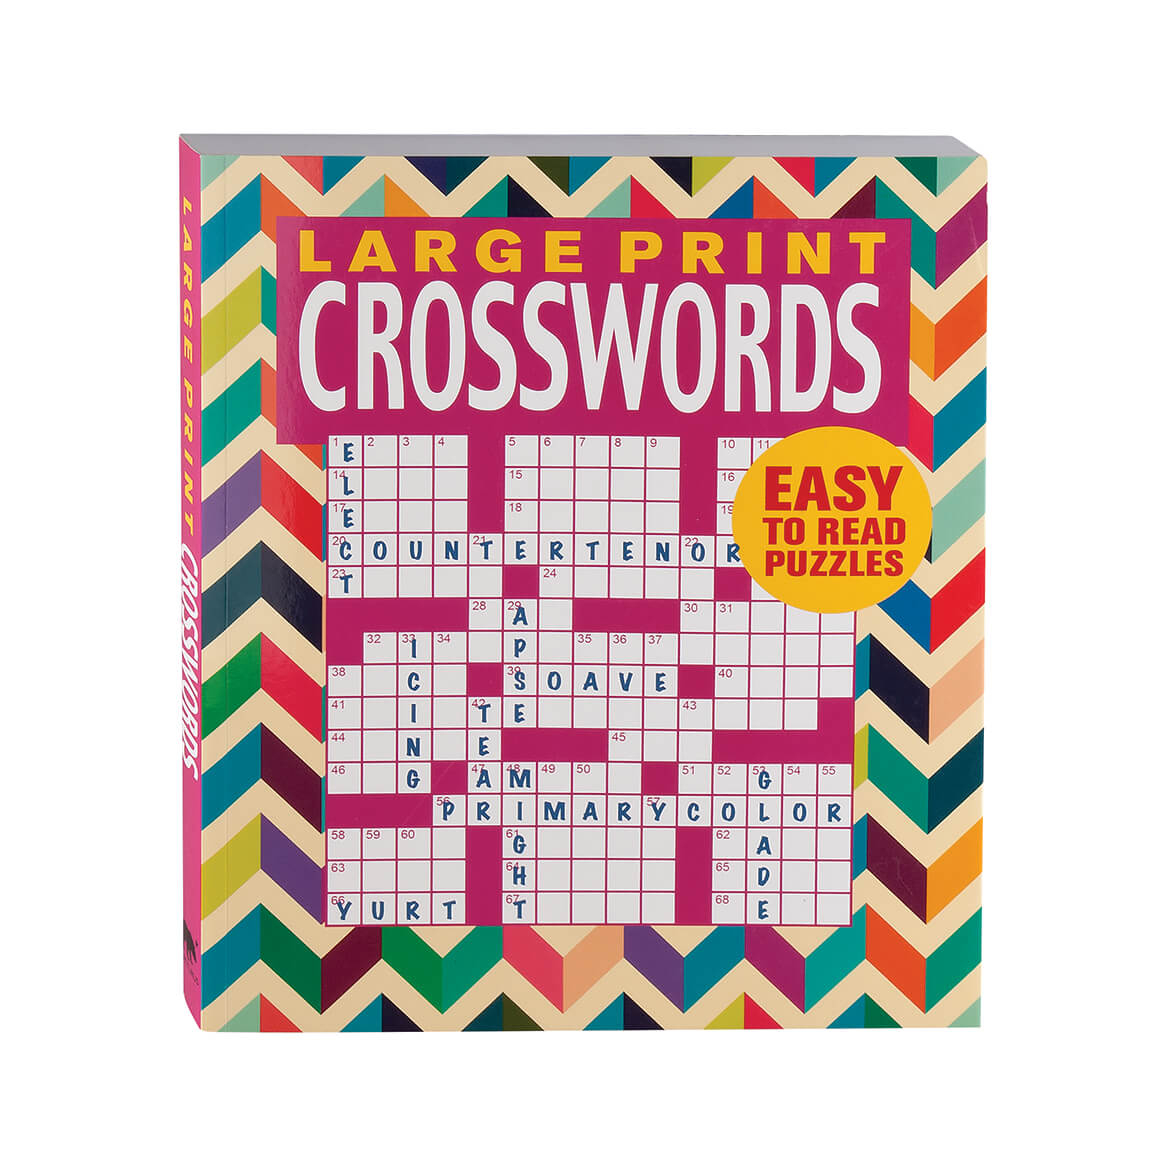 Large Print Crosswords Book - Puzzle Book - Miles Kimball - Large Print Crossword Puzzle Books For Seniors